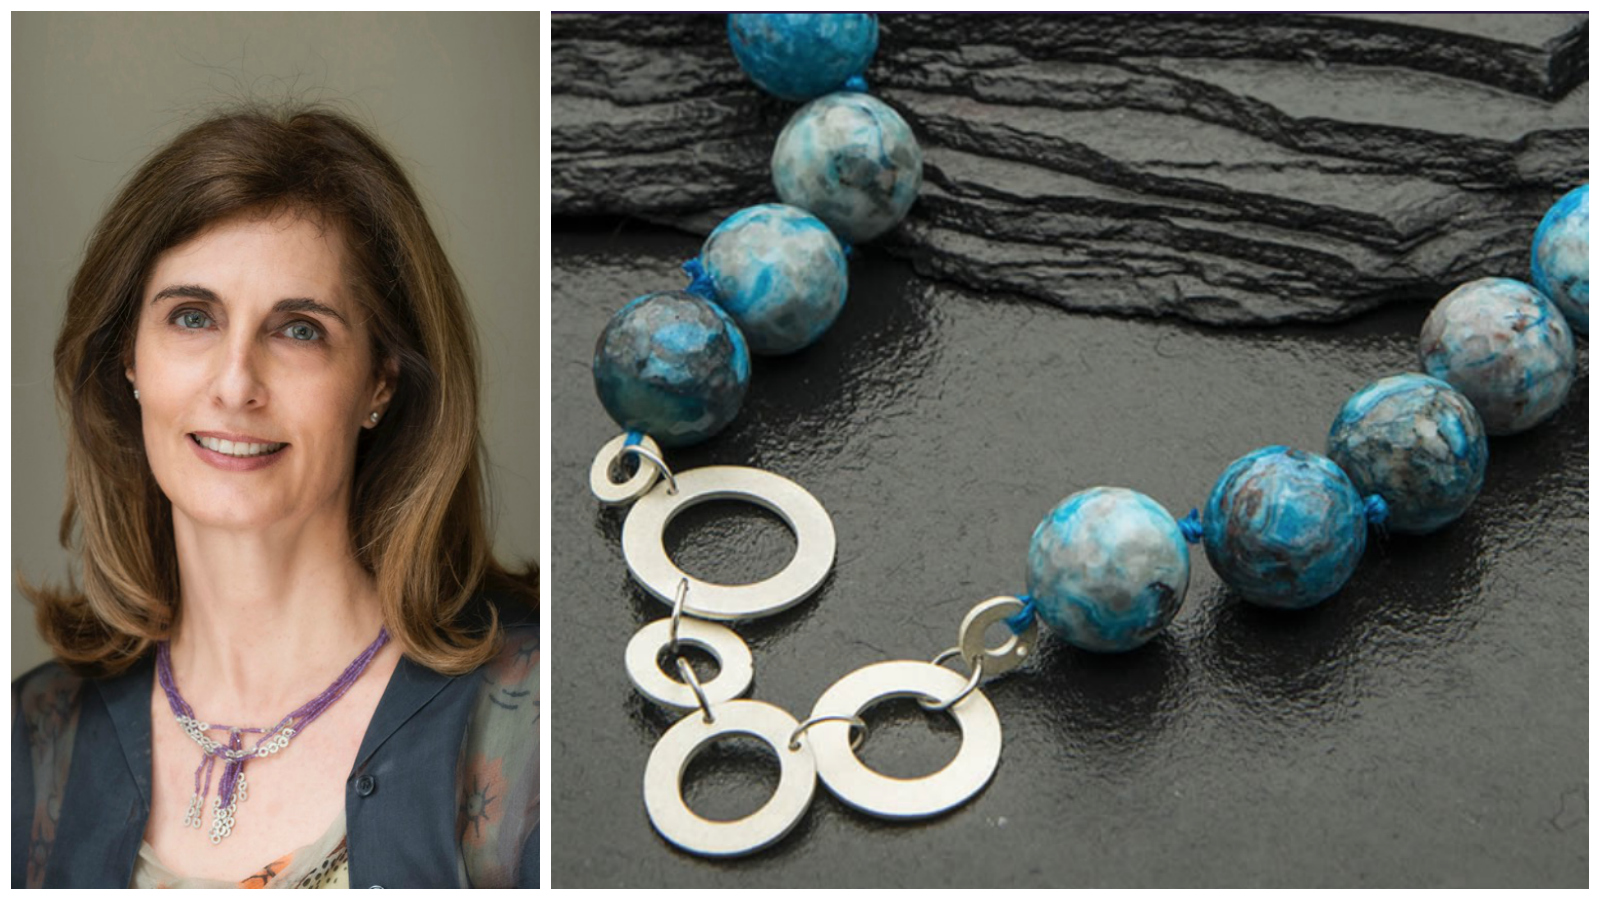 Janet Pulford , founder of Gemboree, a South African jewellery designer inspired by the natural precious and semi-precious stones of her country to create unique, relaxed pieces reflecting the colours of the changing seasons. Click to learn more.